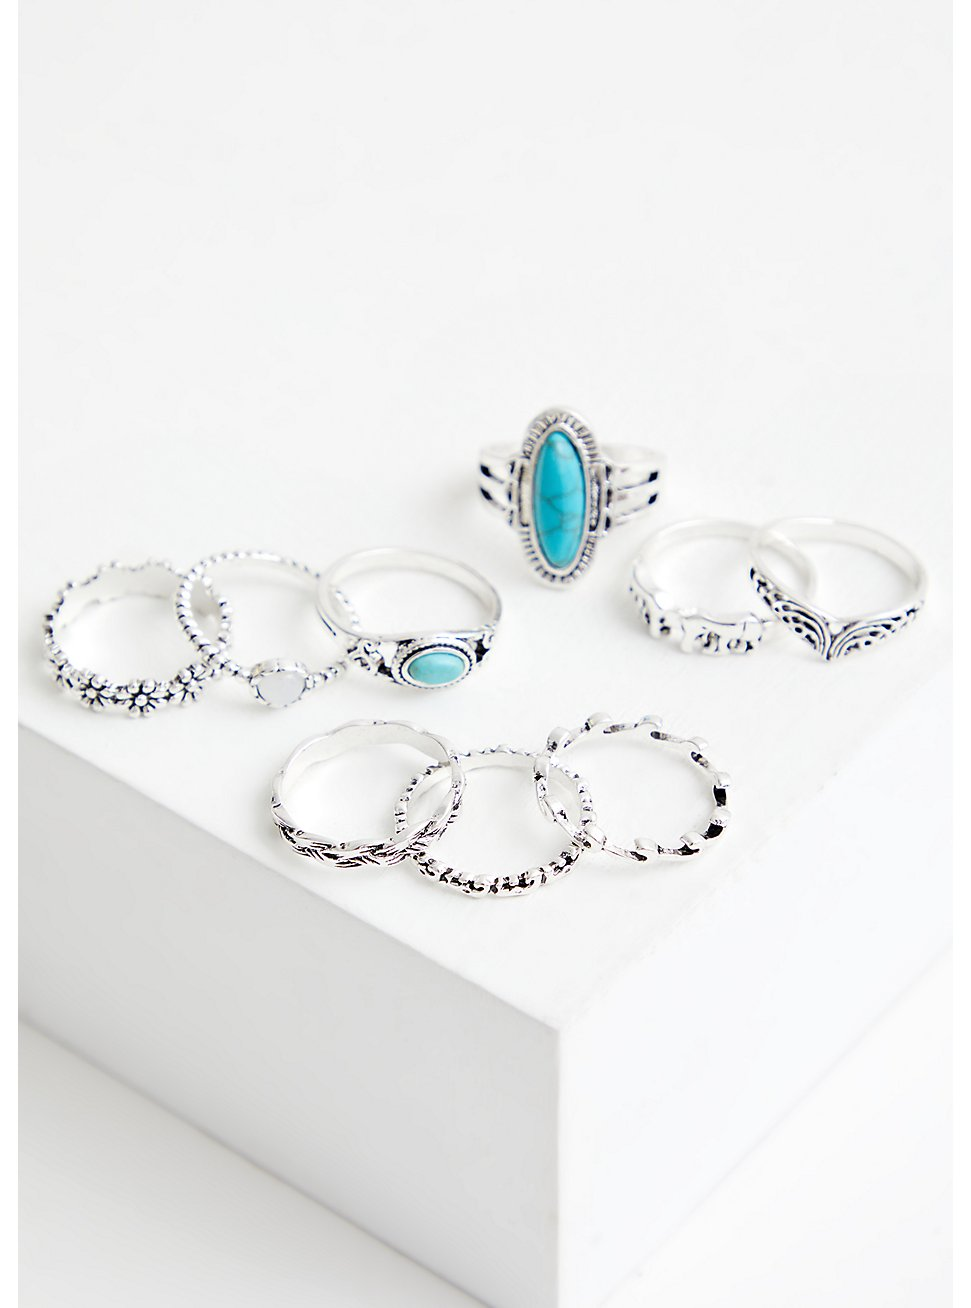 Silver Tone & Faux Turquoise Ring Set - Set of 9, TURQUOISE, hi-res